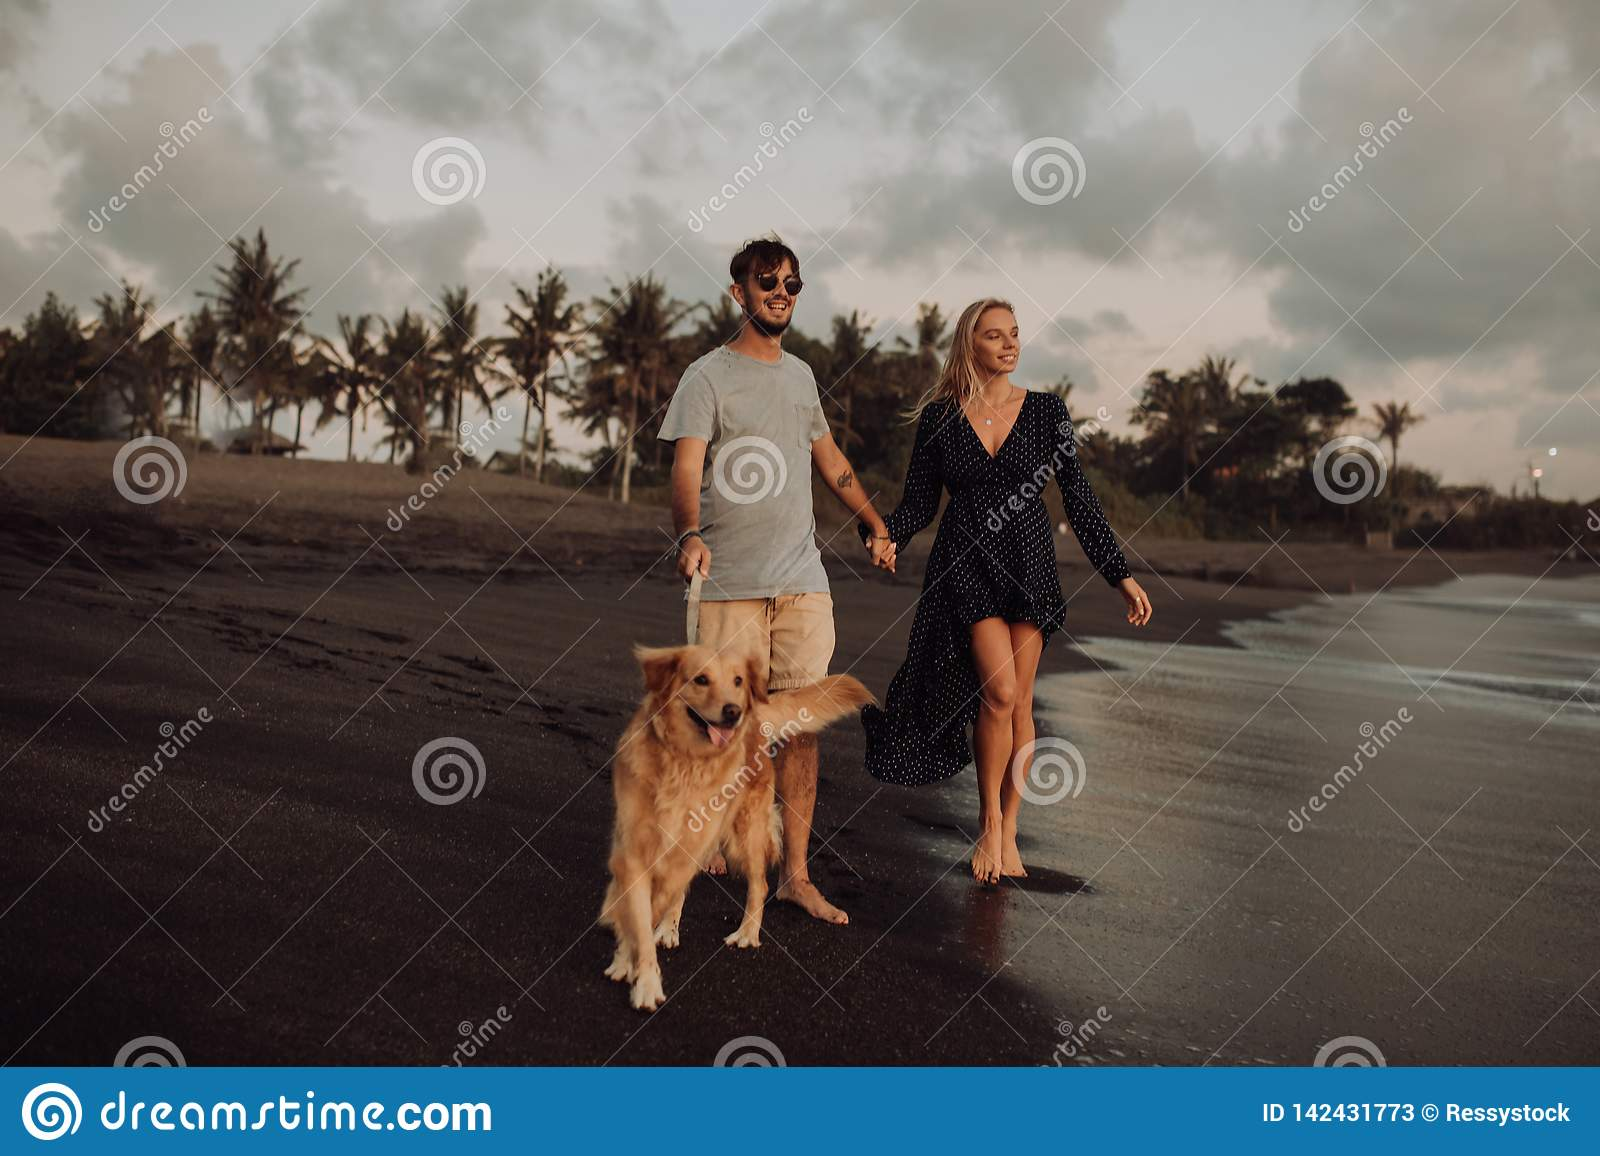 Beautiful happy laugh young hipster couple with golden retriever on beach. ocean an sand. waves. concepte of freedom and